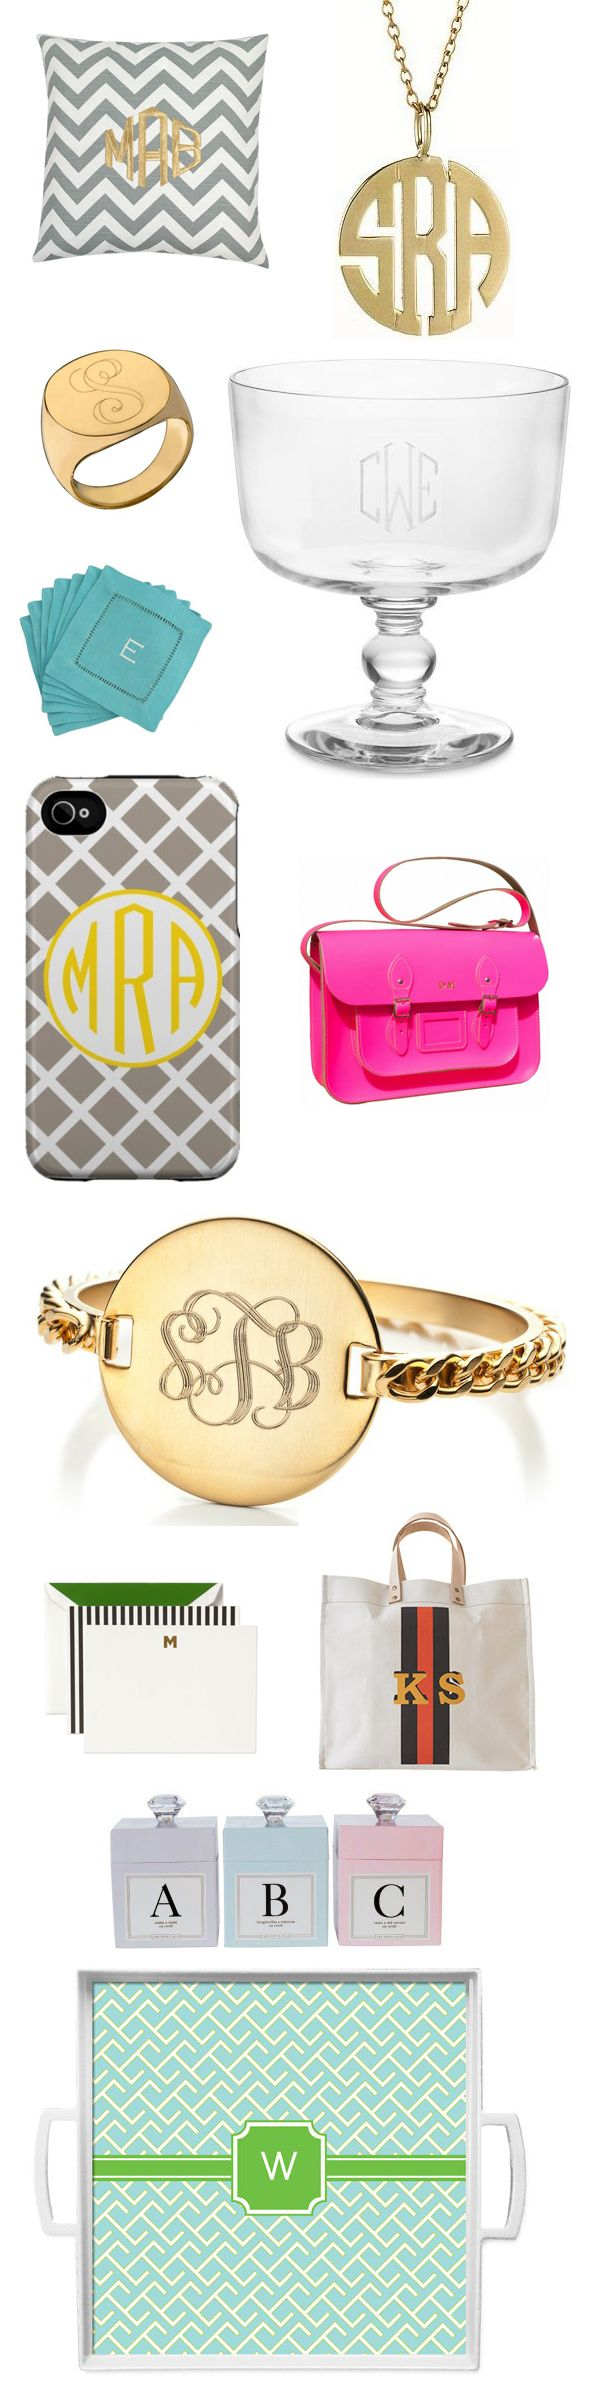 monogrammed everything!!